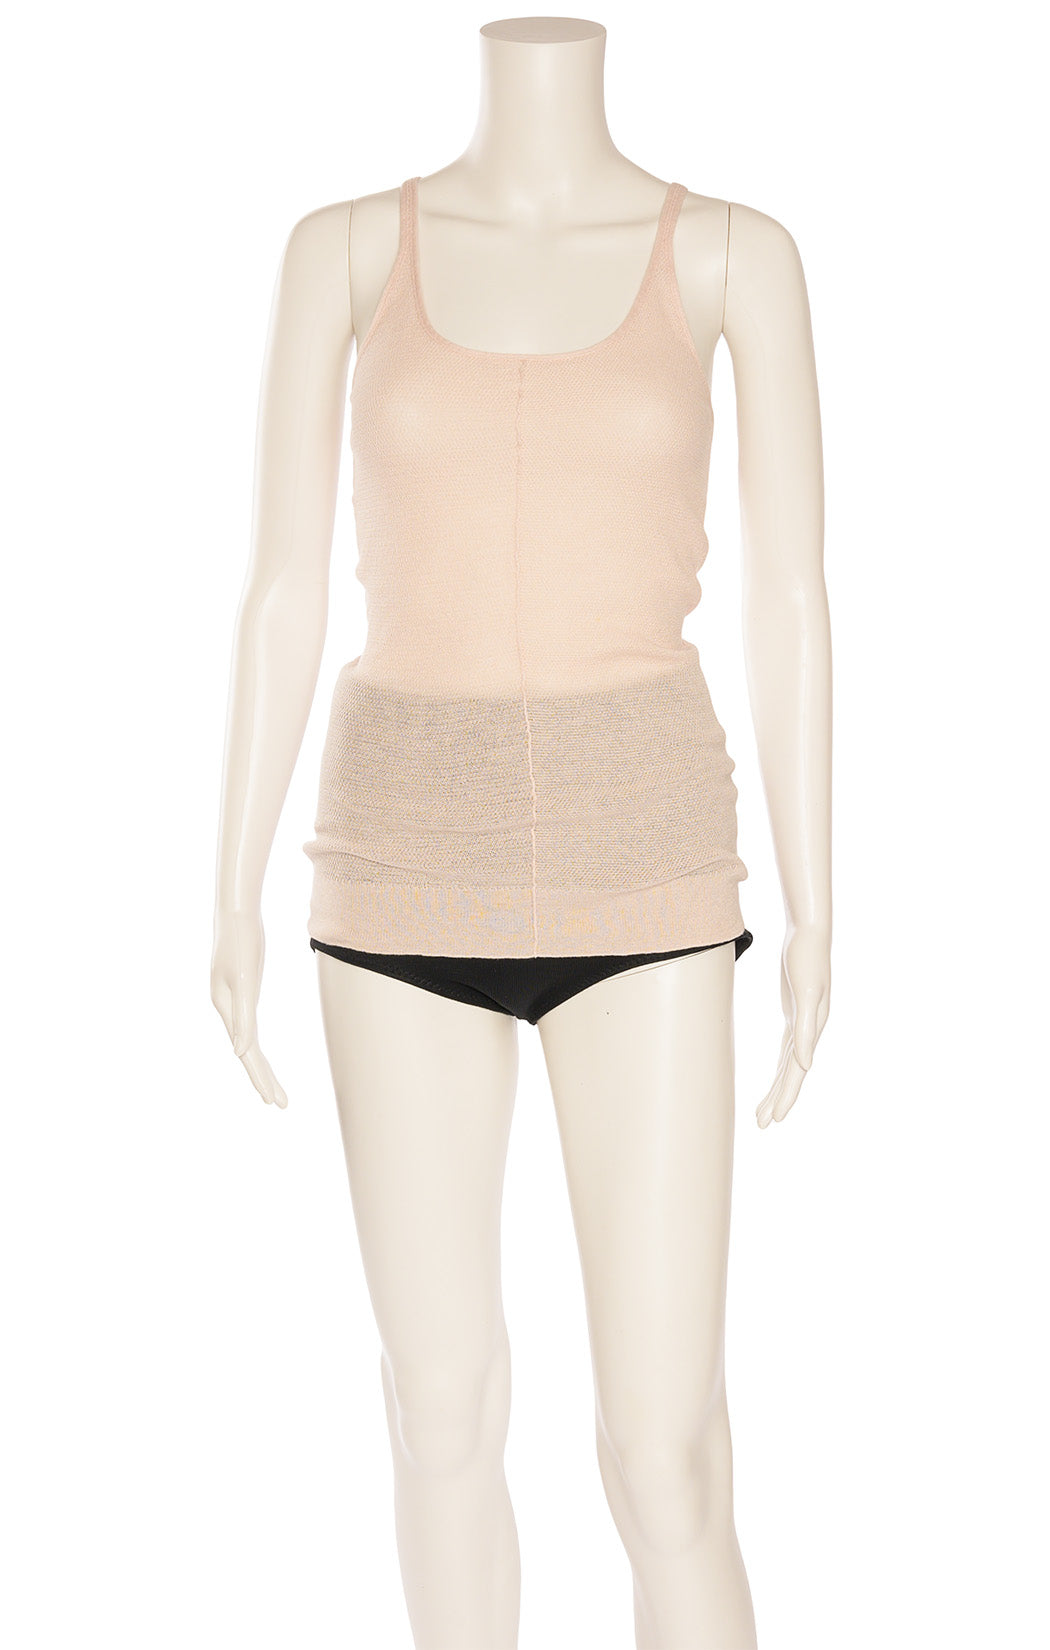 Light pink textured fabric tank style knit top